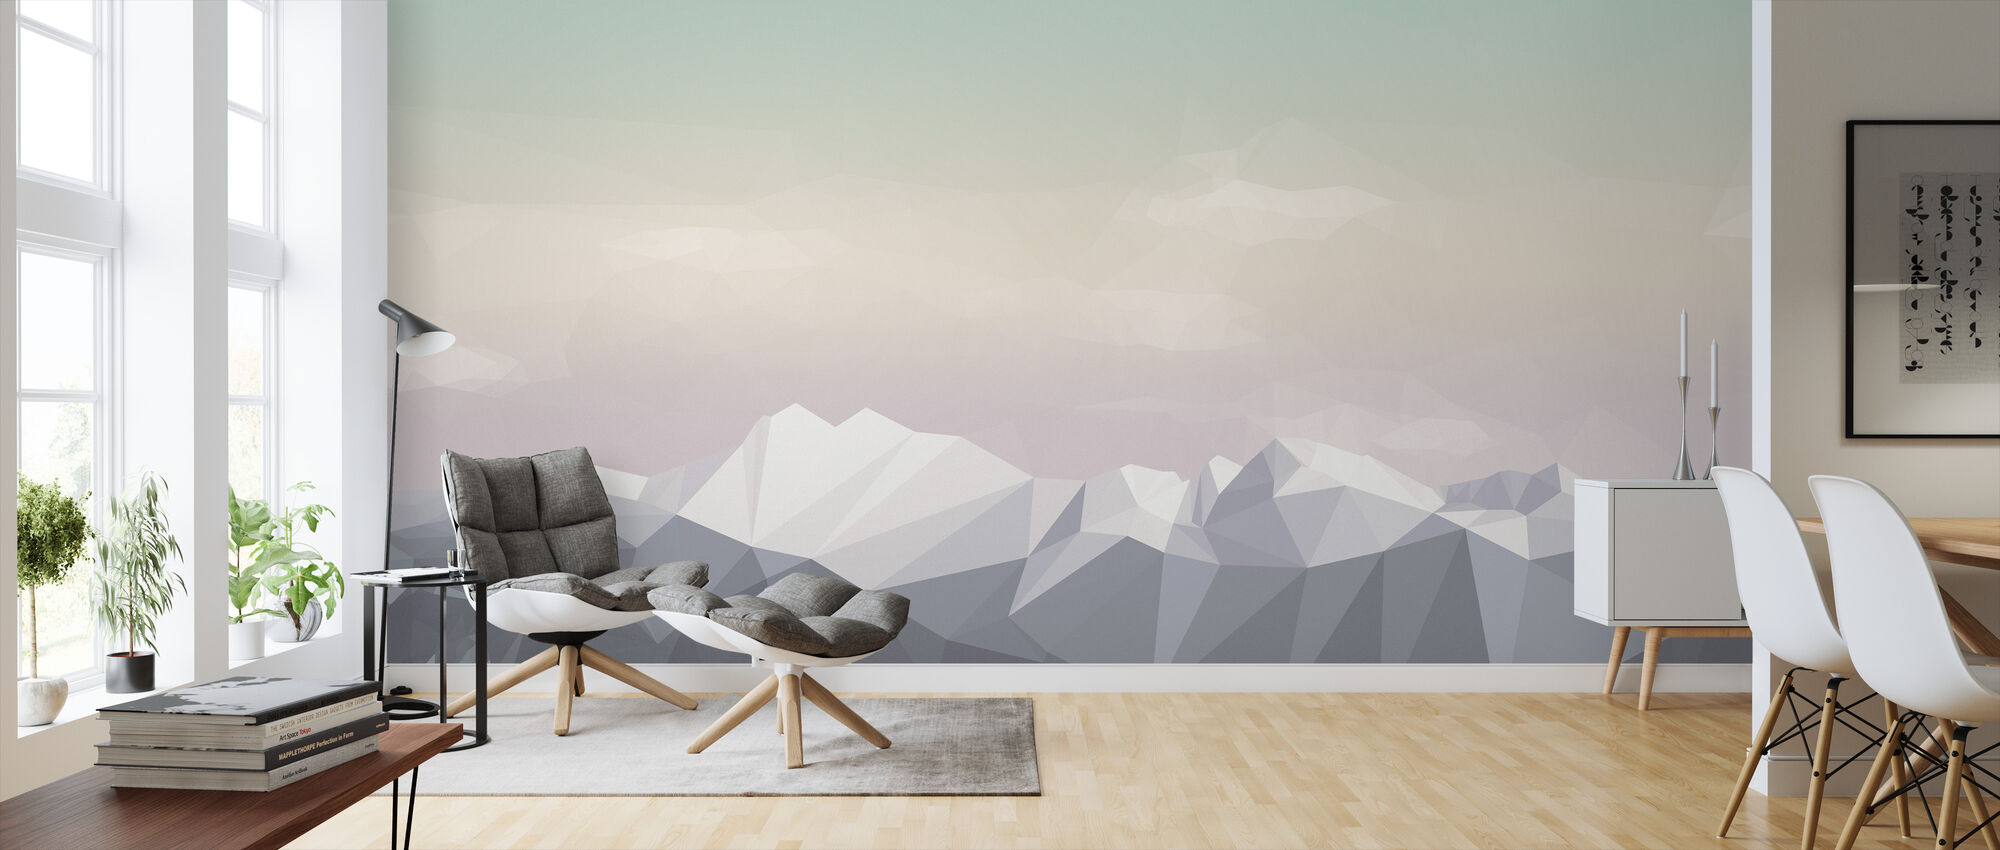 Mostly Mountains Icecream - Wallpaper - Living Room